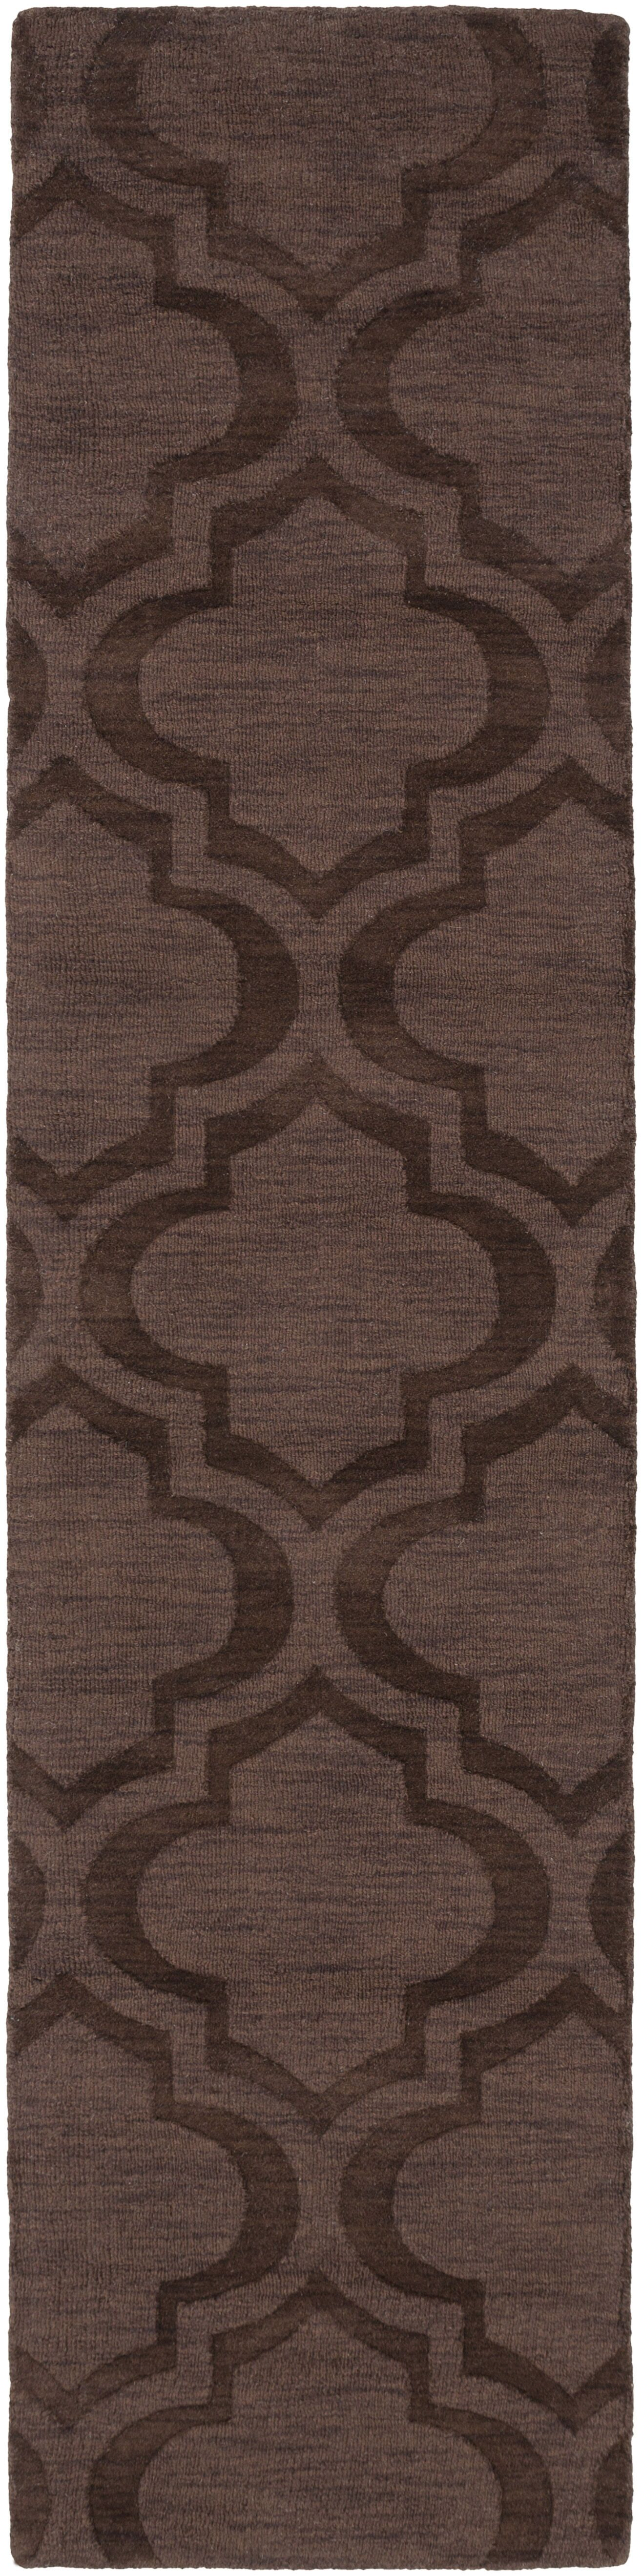 Castro Brown Geometric Kate Area Rug Rug Size: Runner 2'3